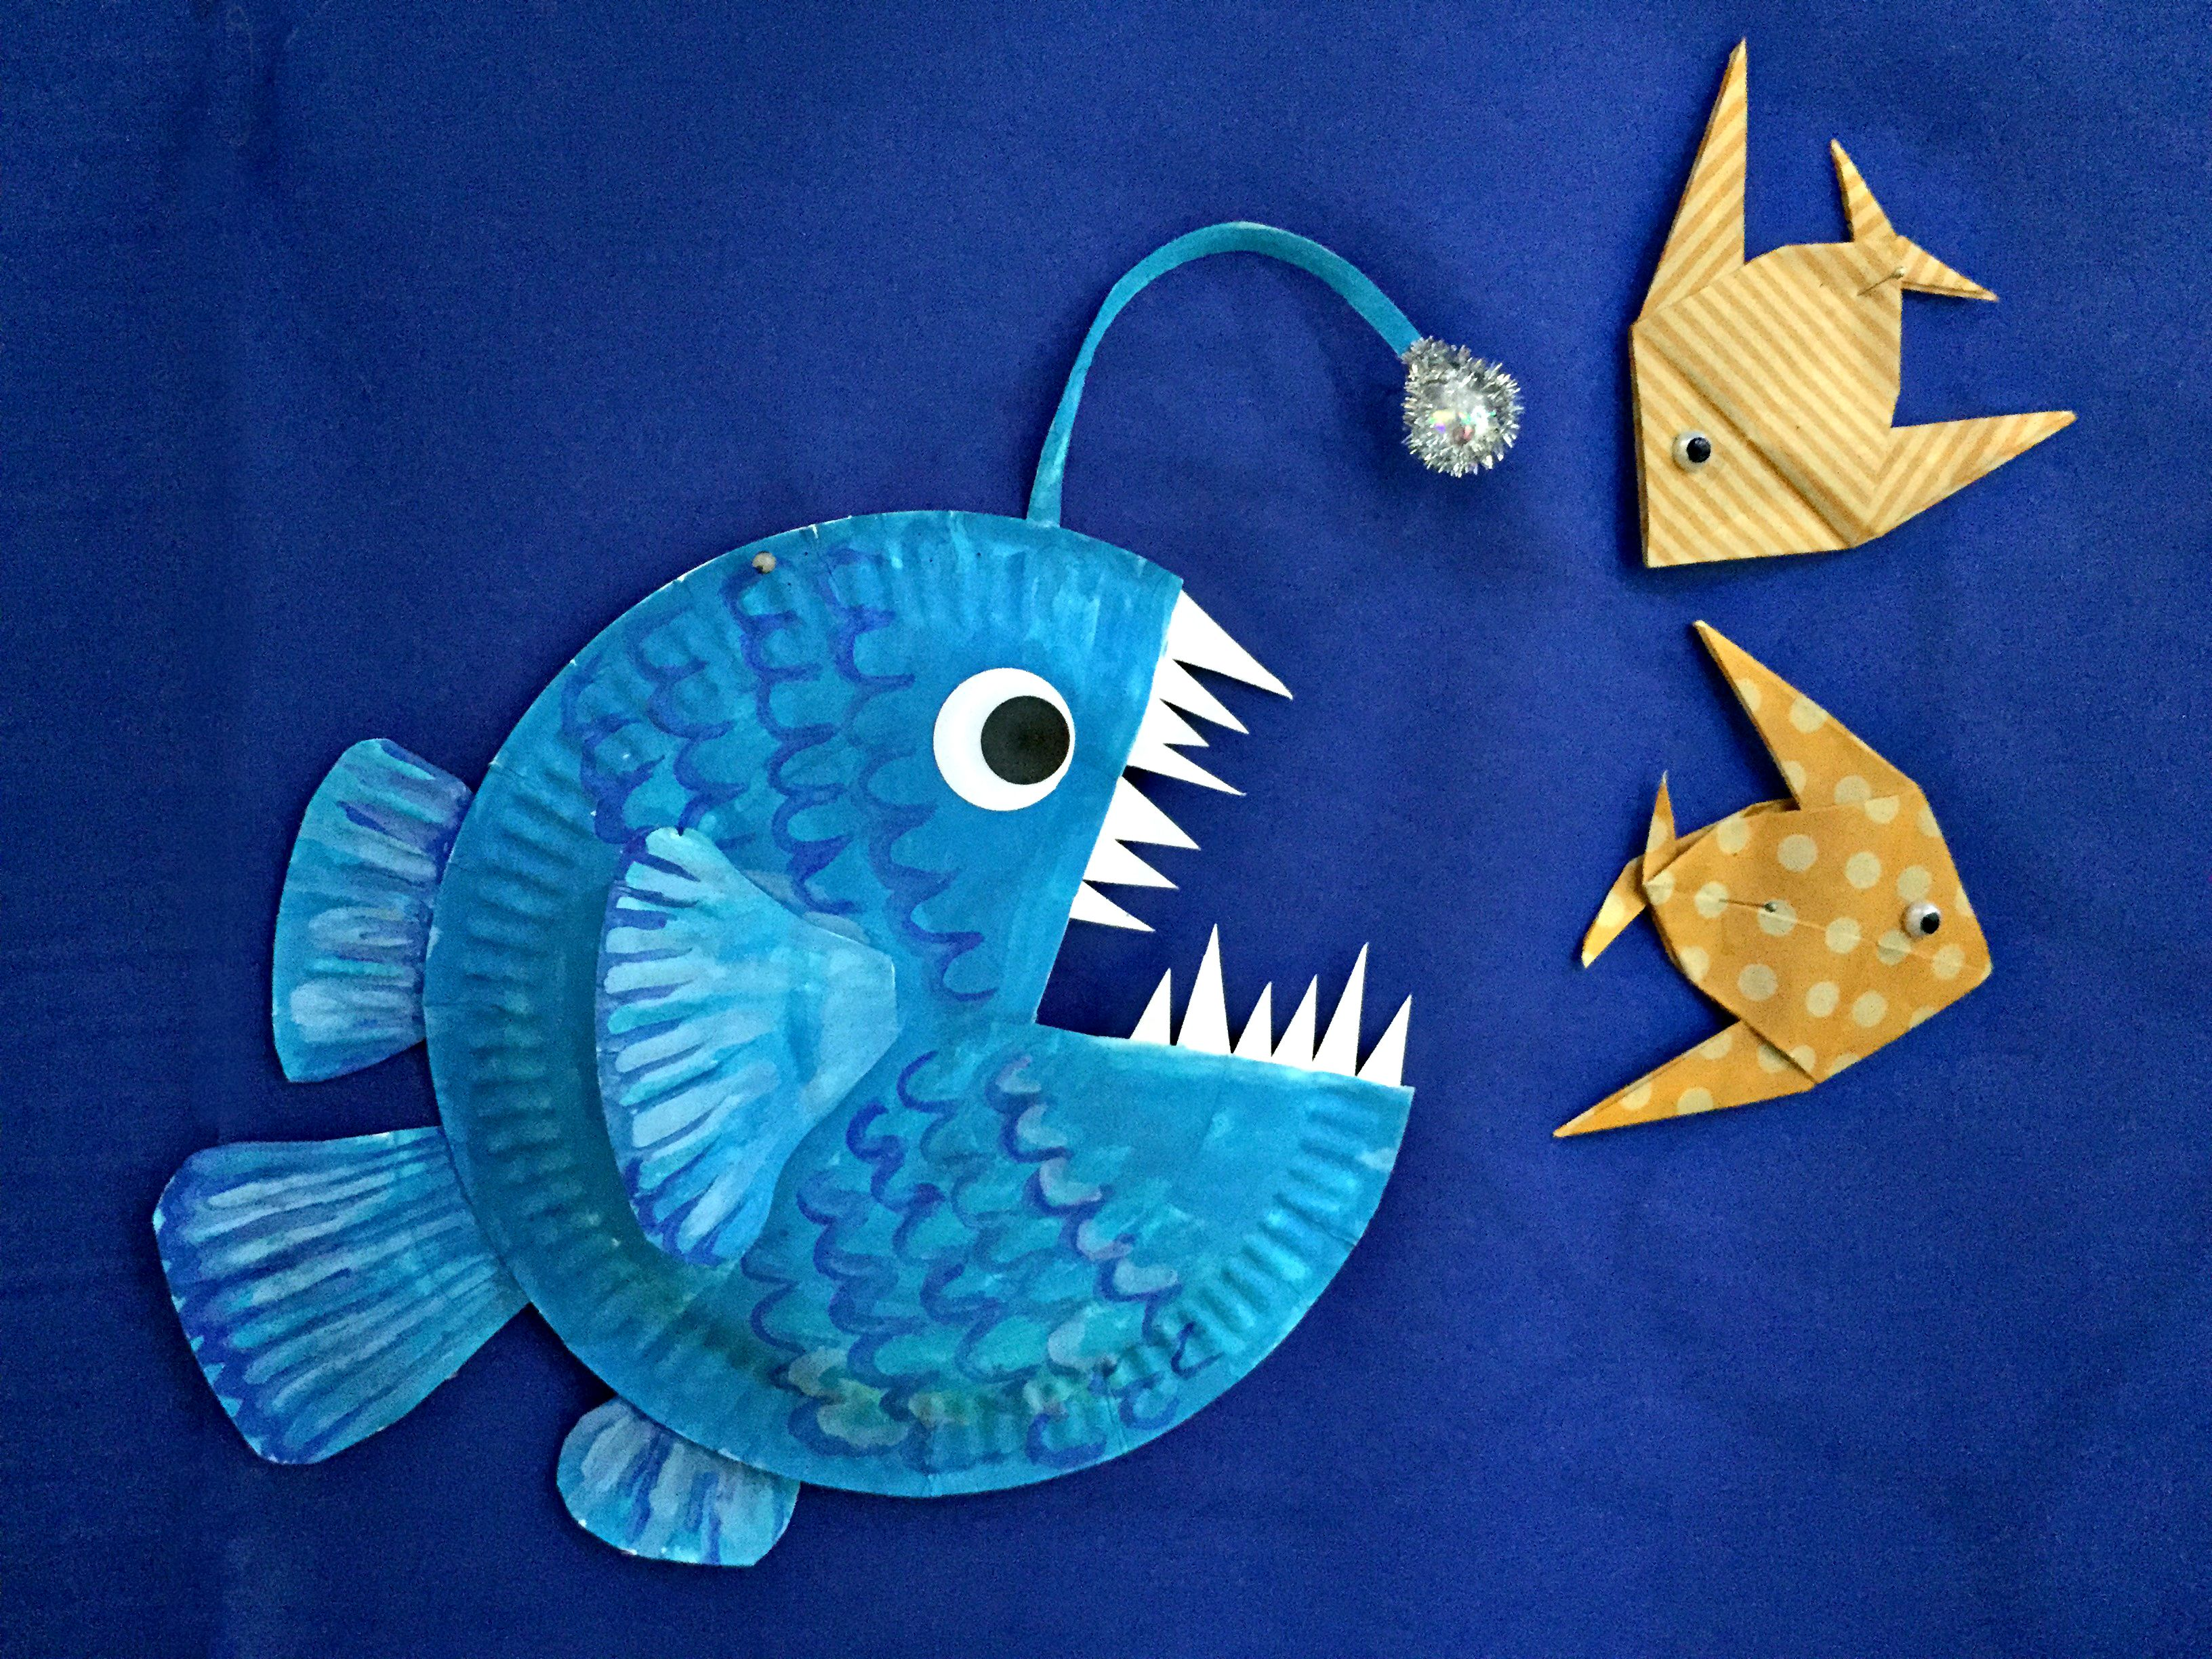 paper plate lantern fish, and origami angelfish | VBS 2016 ... - photo#41